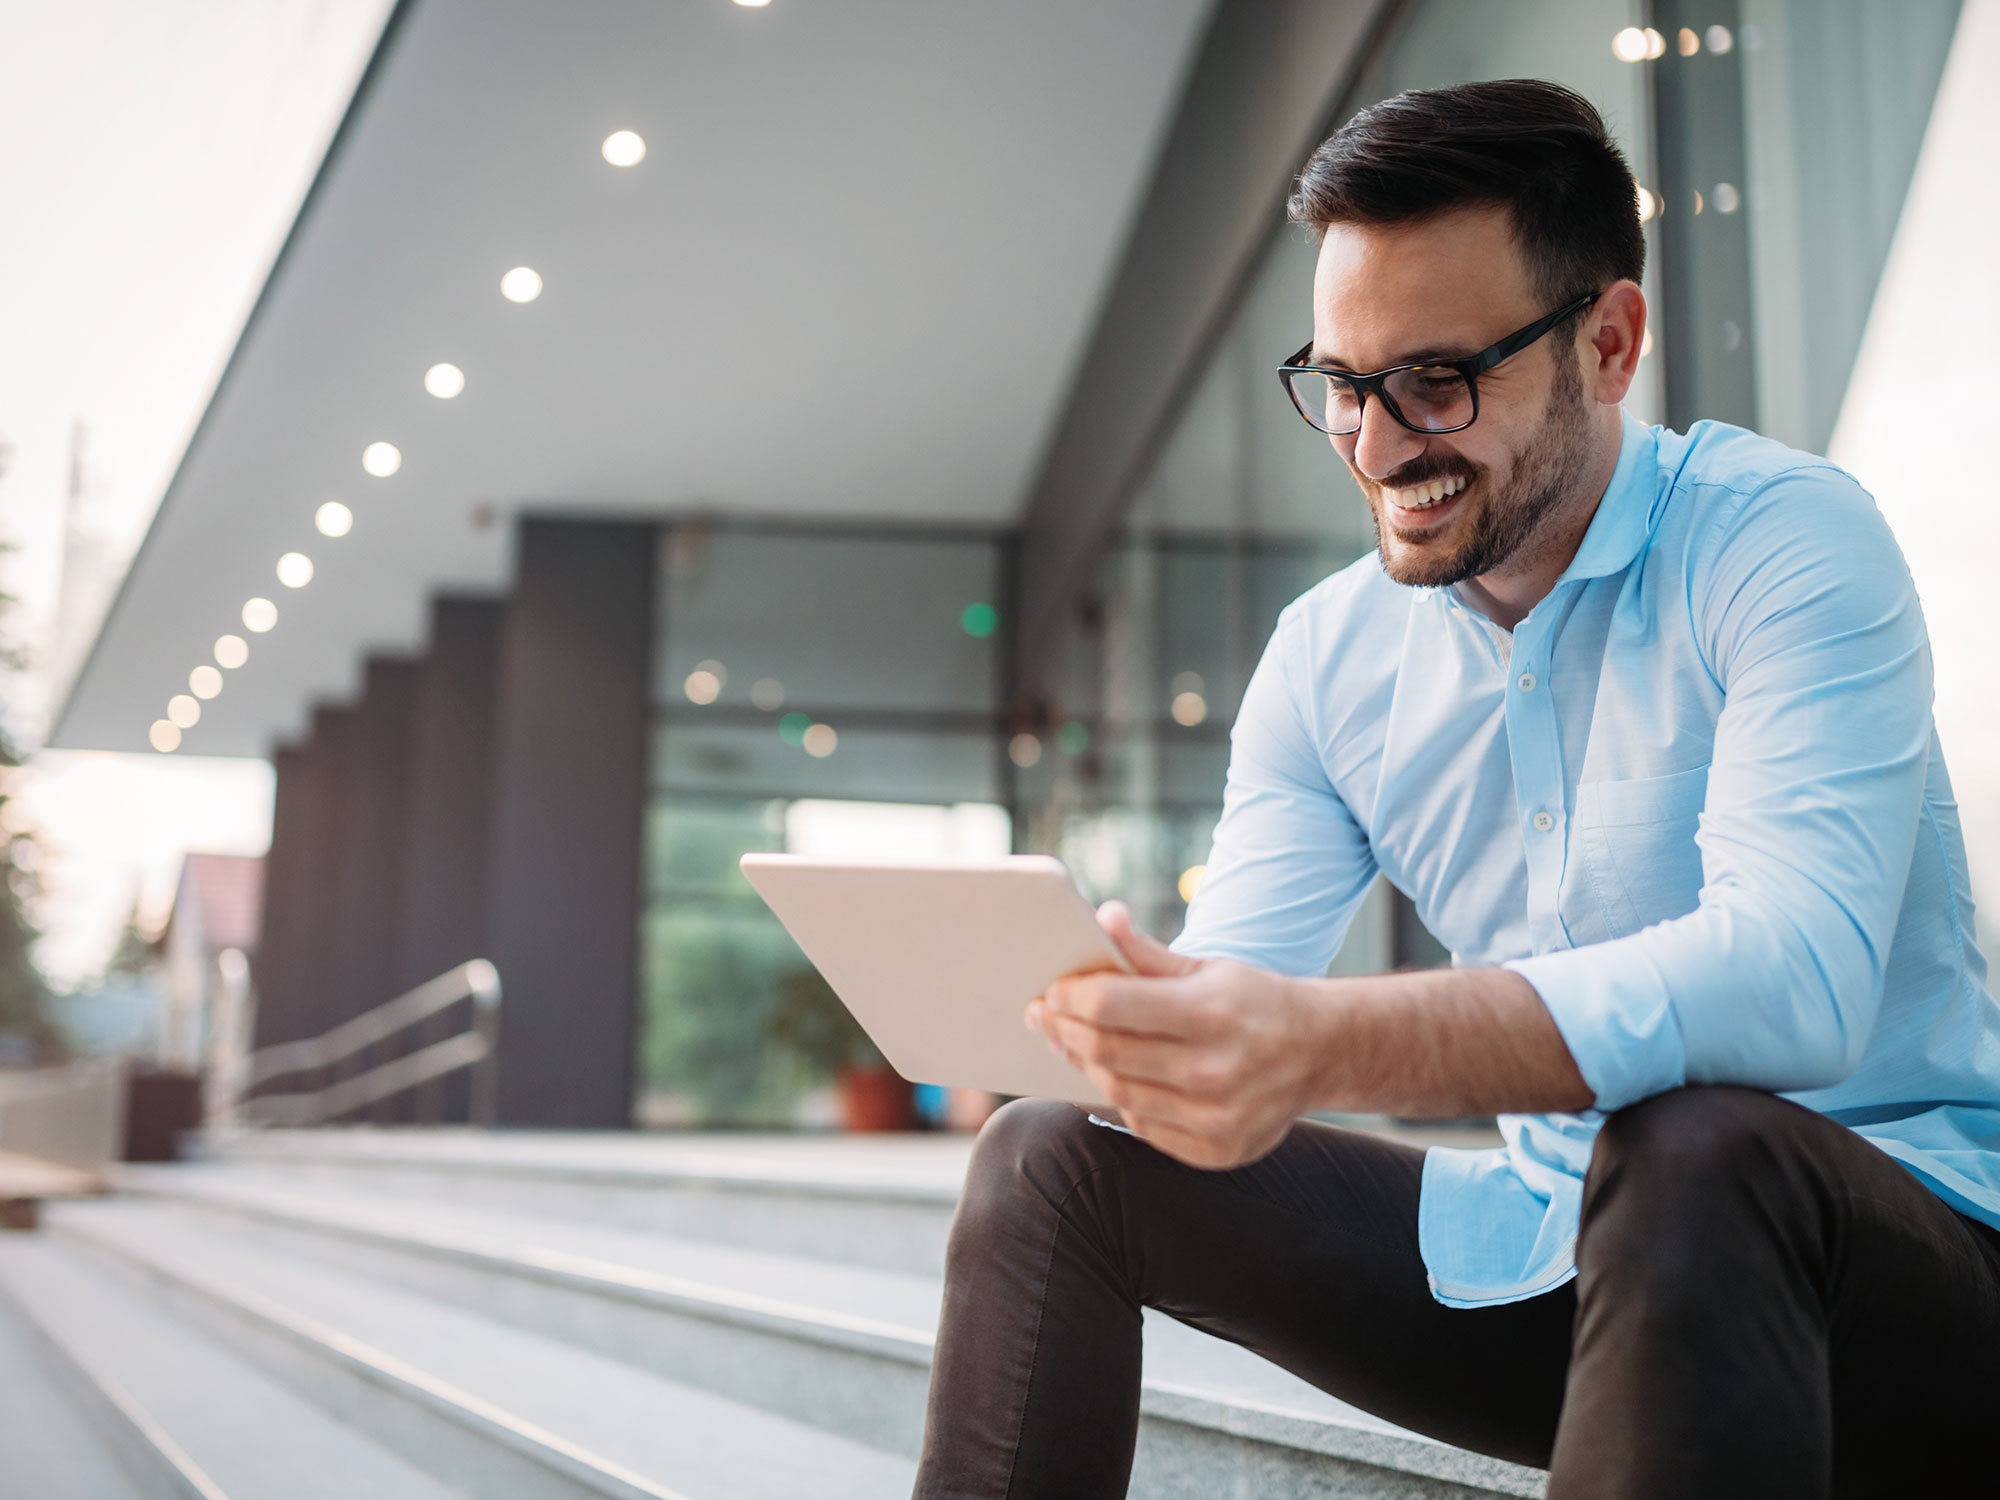 Business man looks at a laptop sitting outdoors on stairs